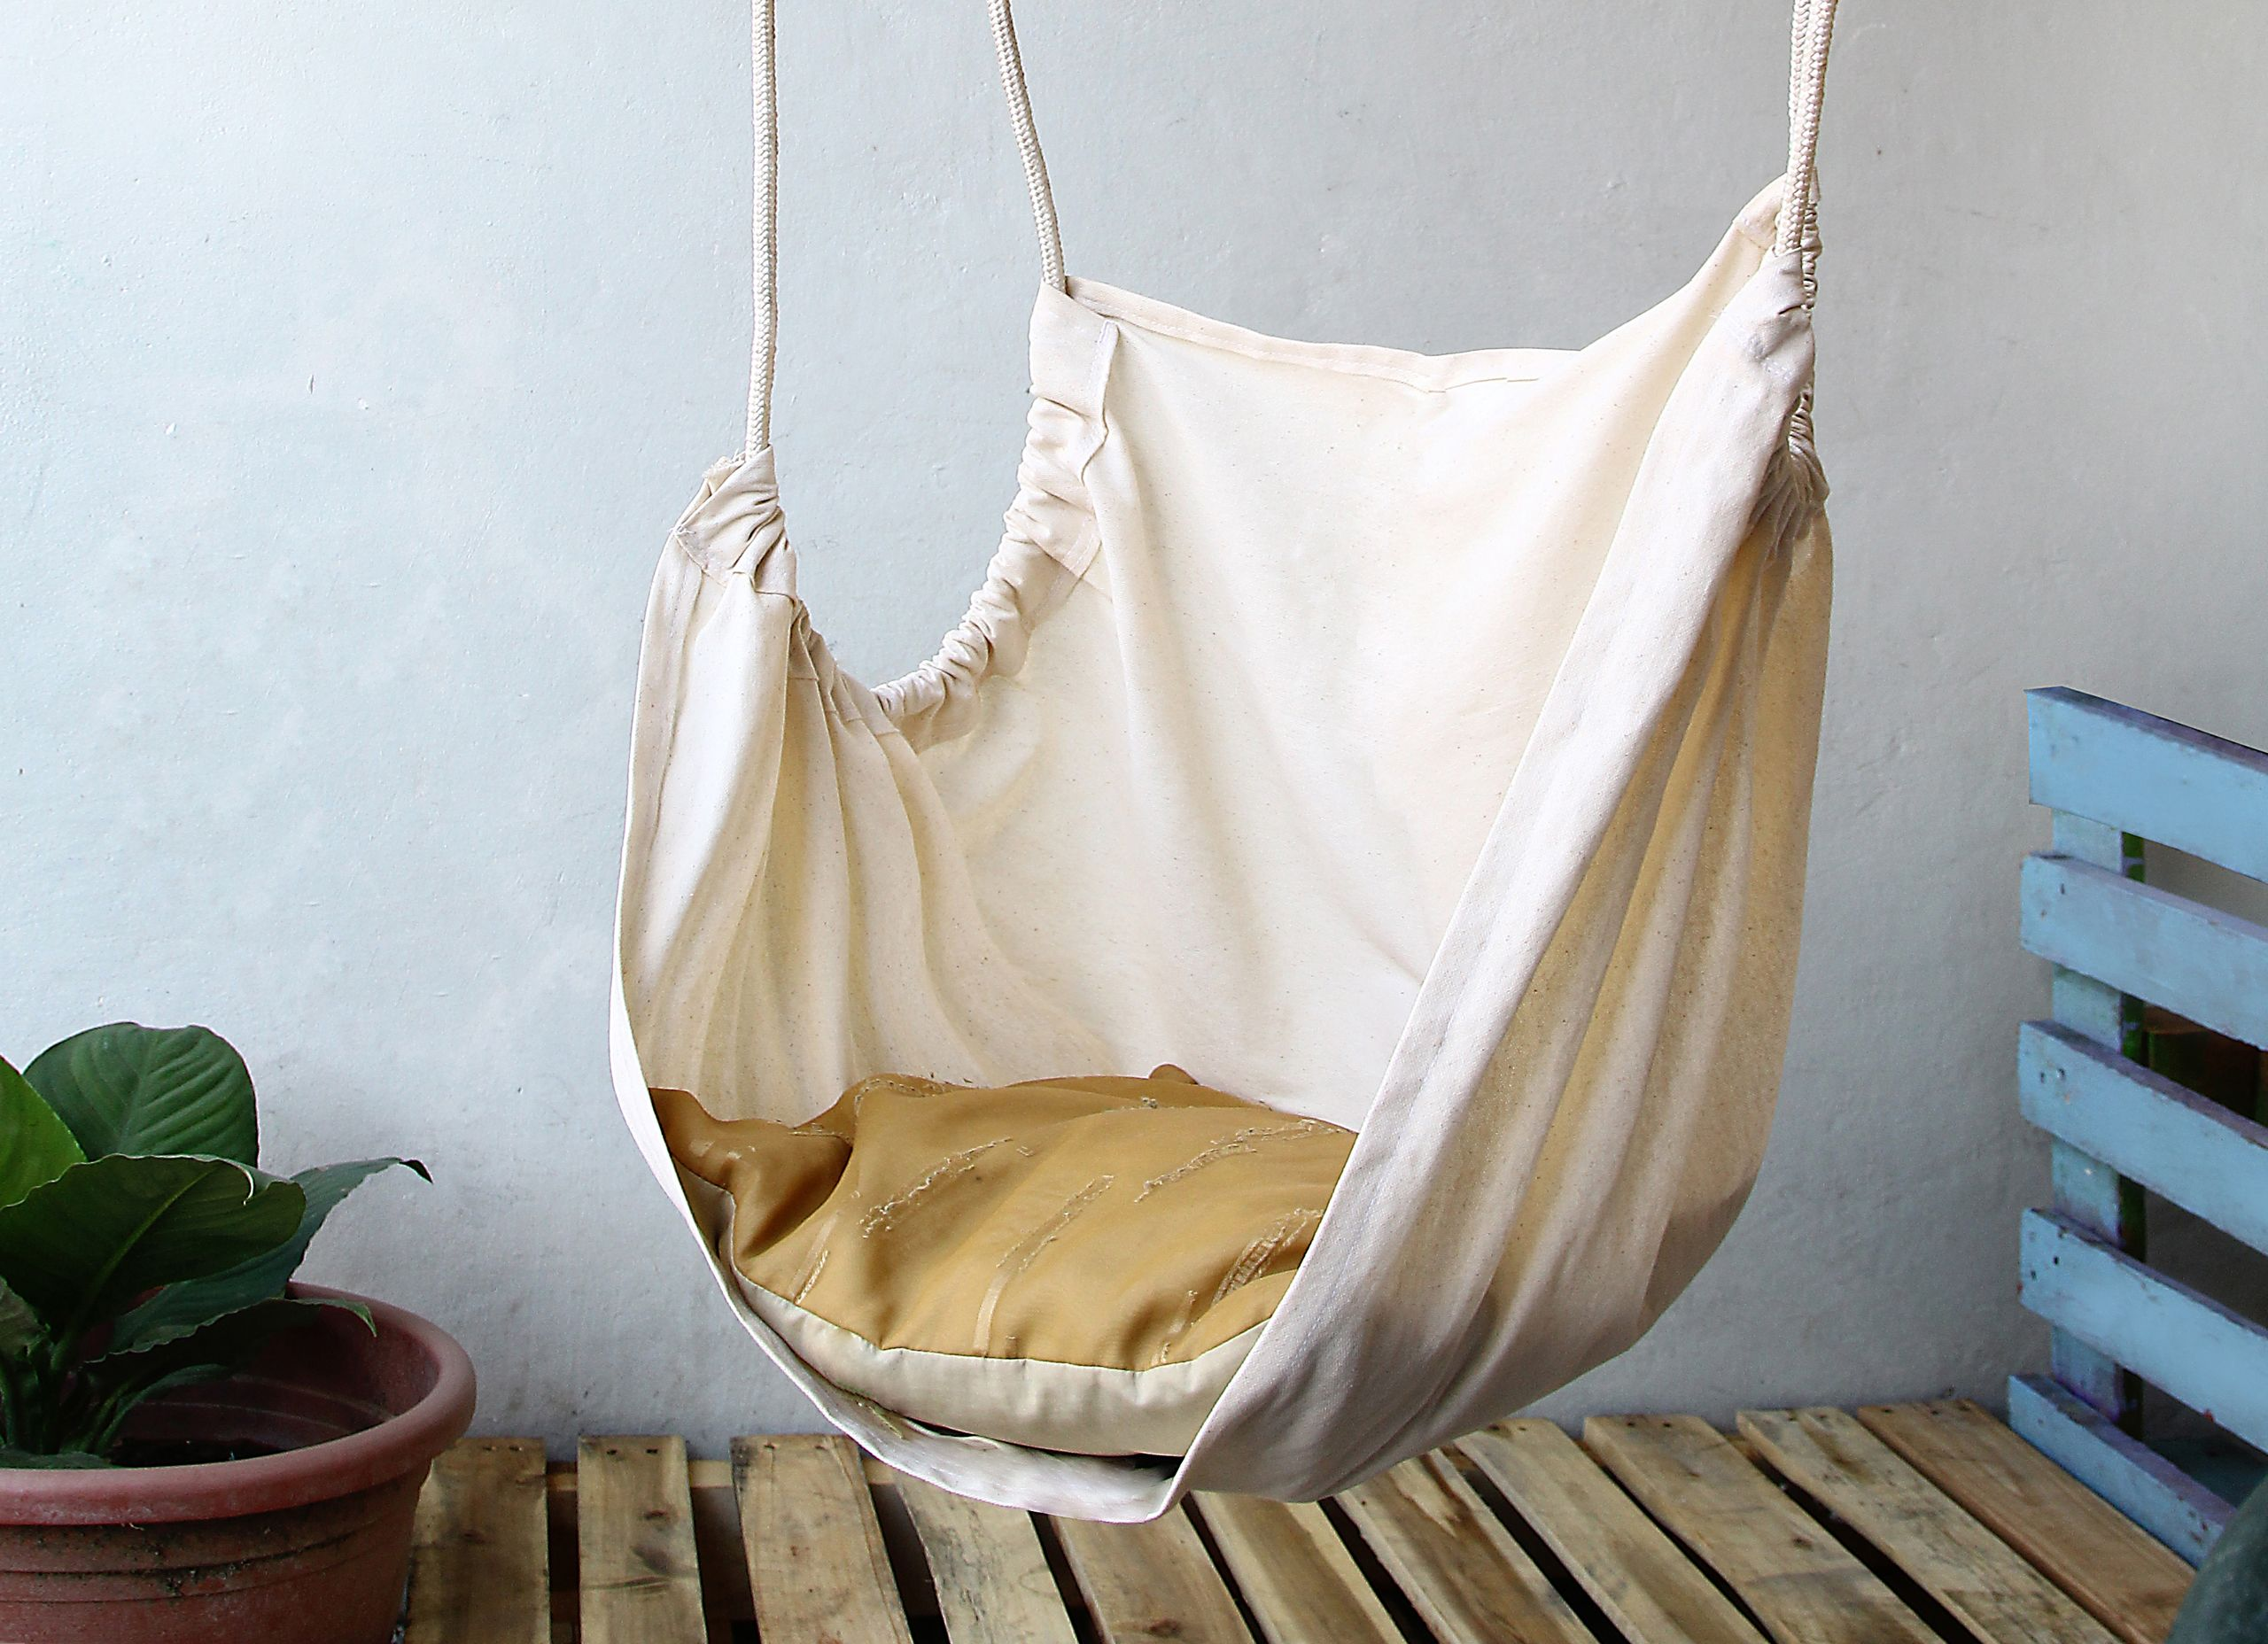 17 best ideas about hanging hammock chair on pinterest | hammock